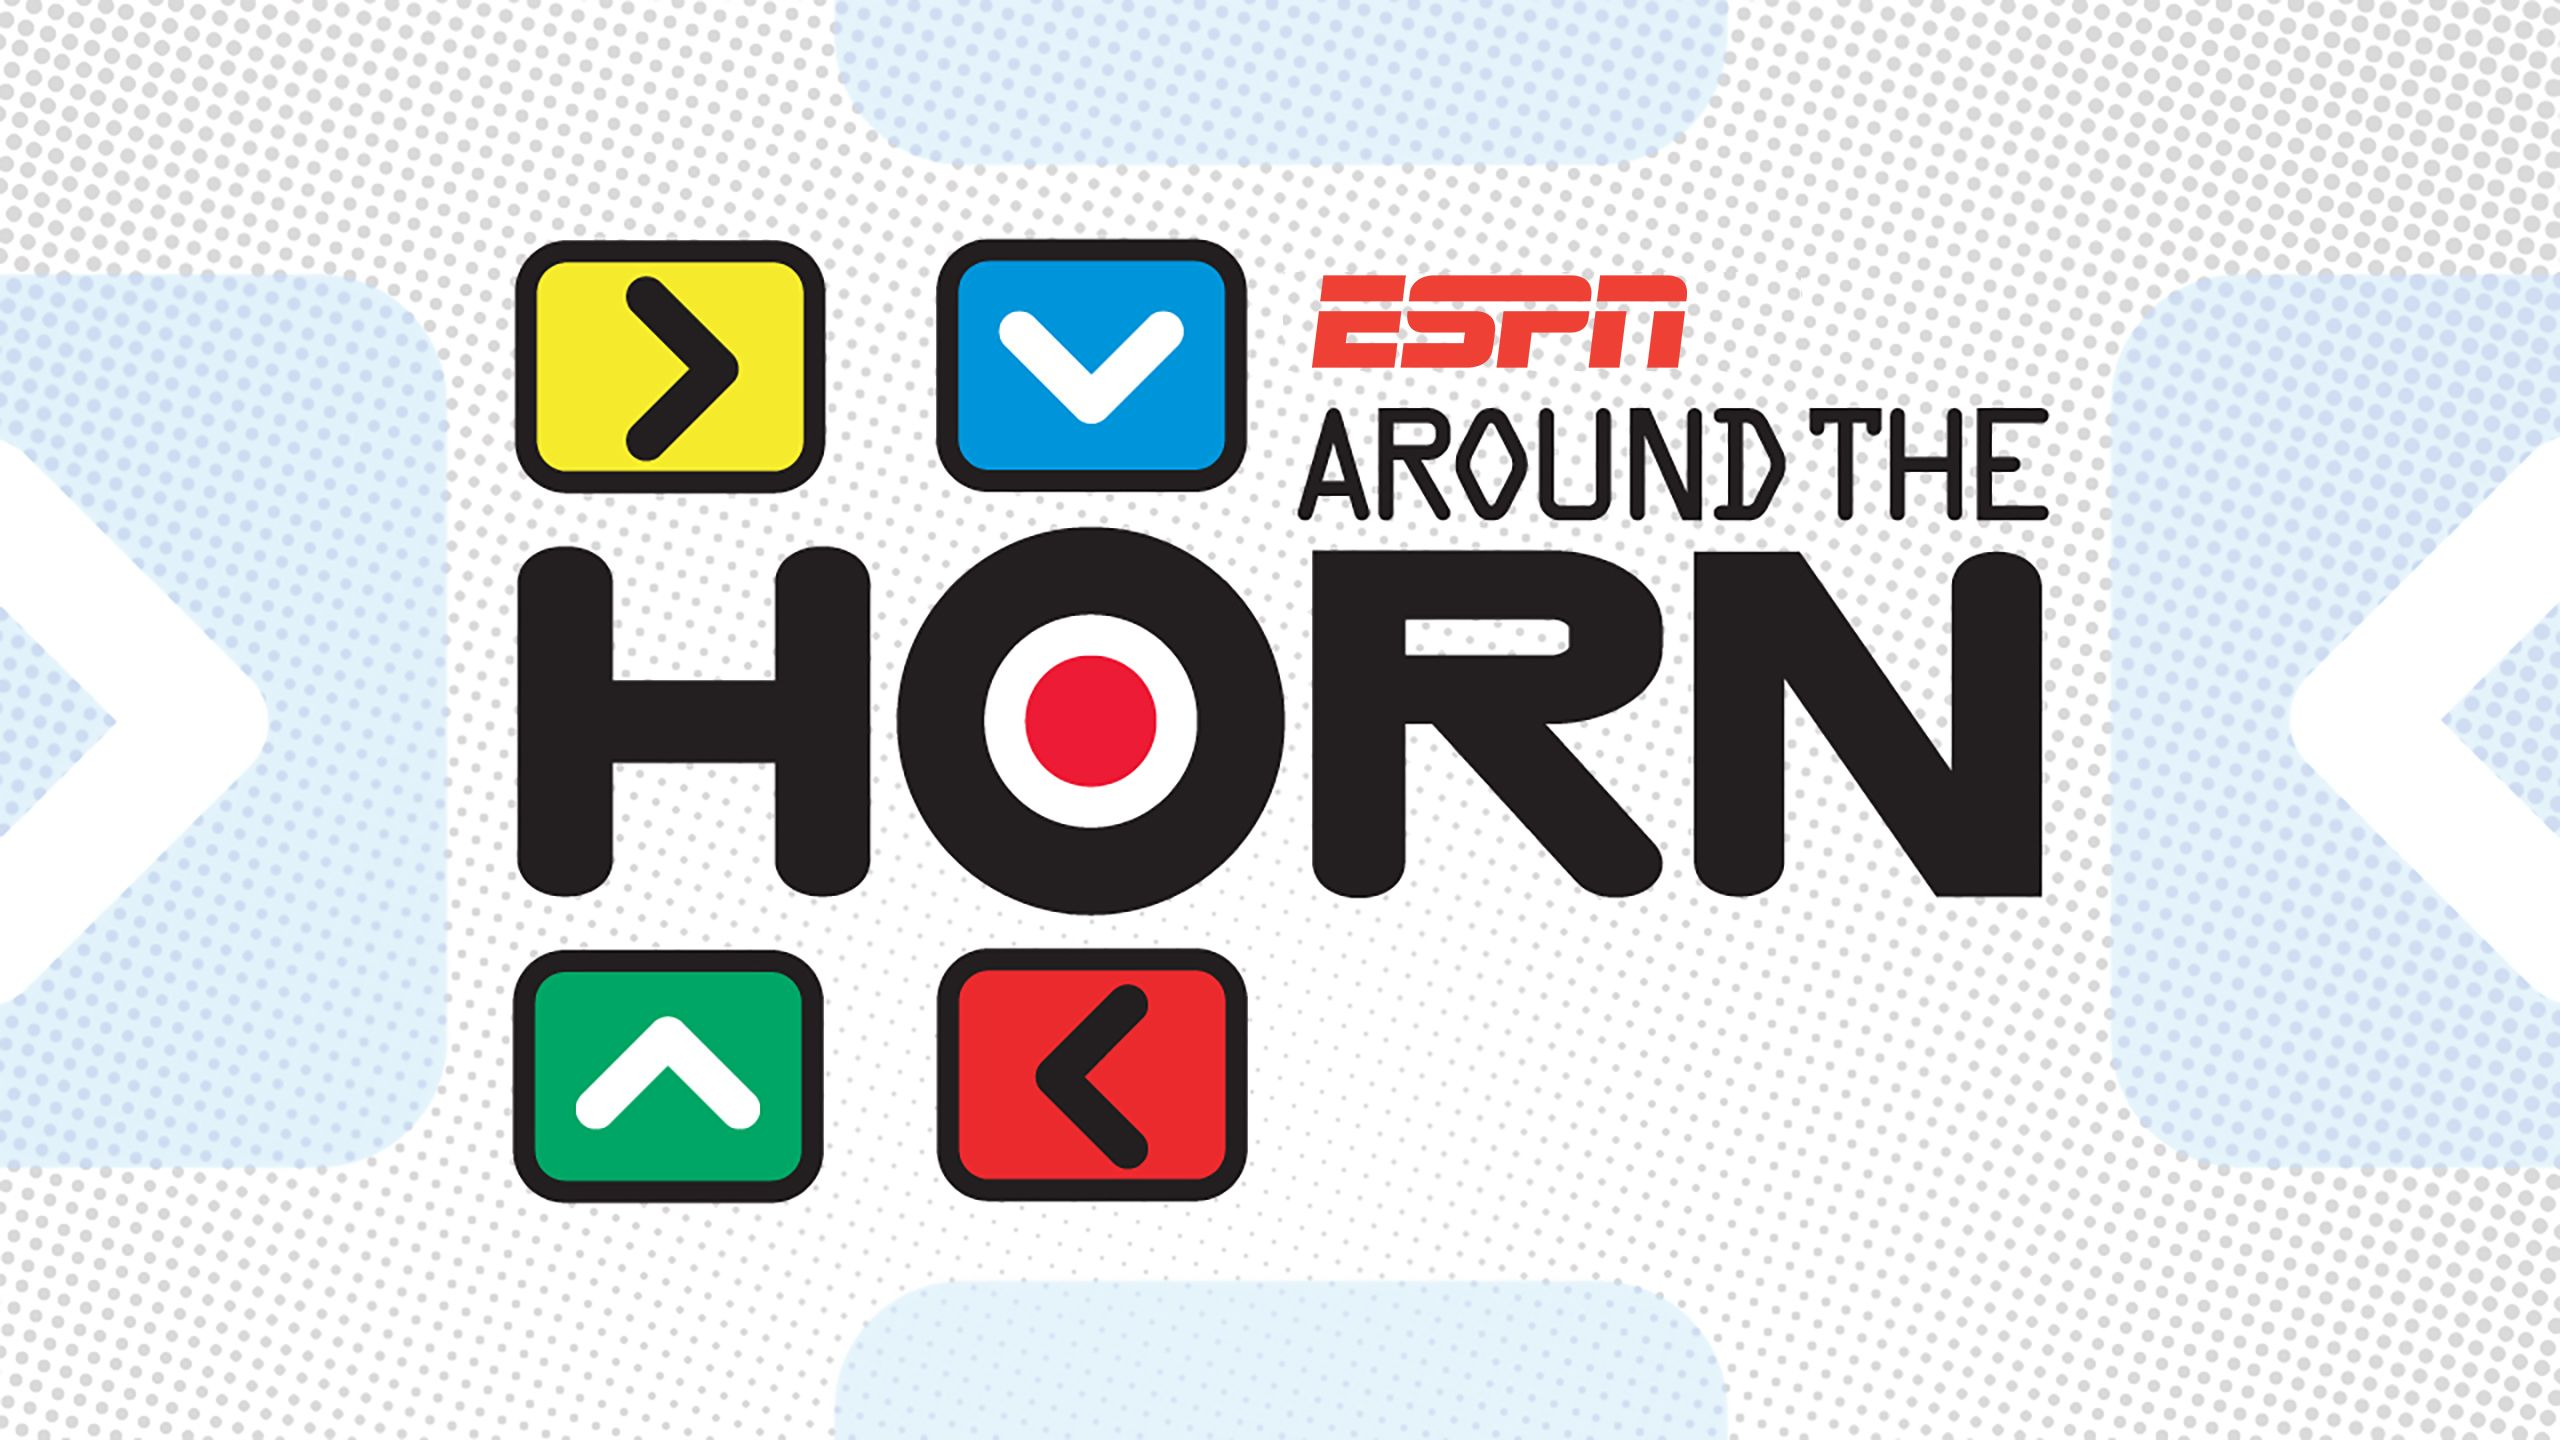 Thu, 11/16 - Around The Horn